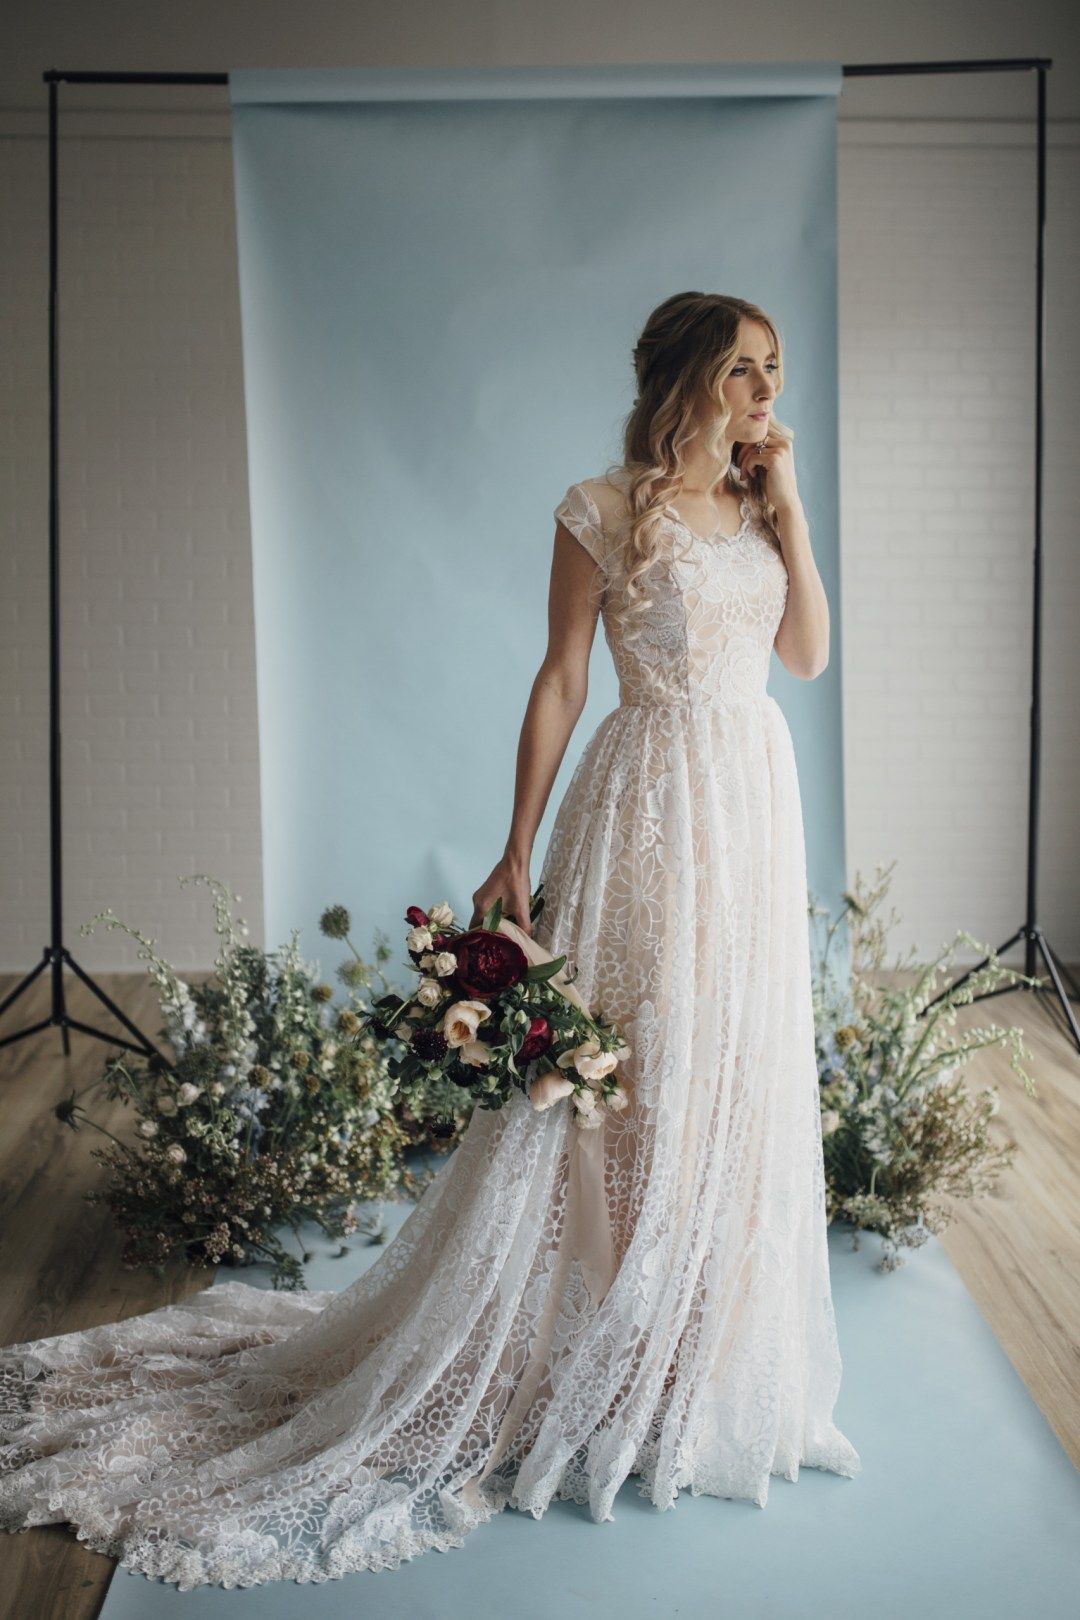 25 Modest Wedding Dresses With Short Sleeves LDS Wedding - Lds Wedding Dress